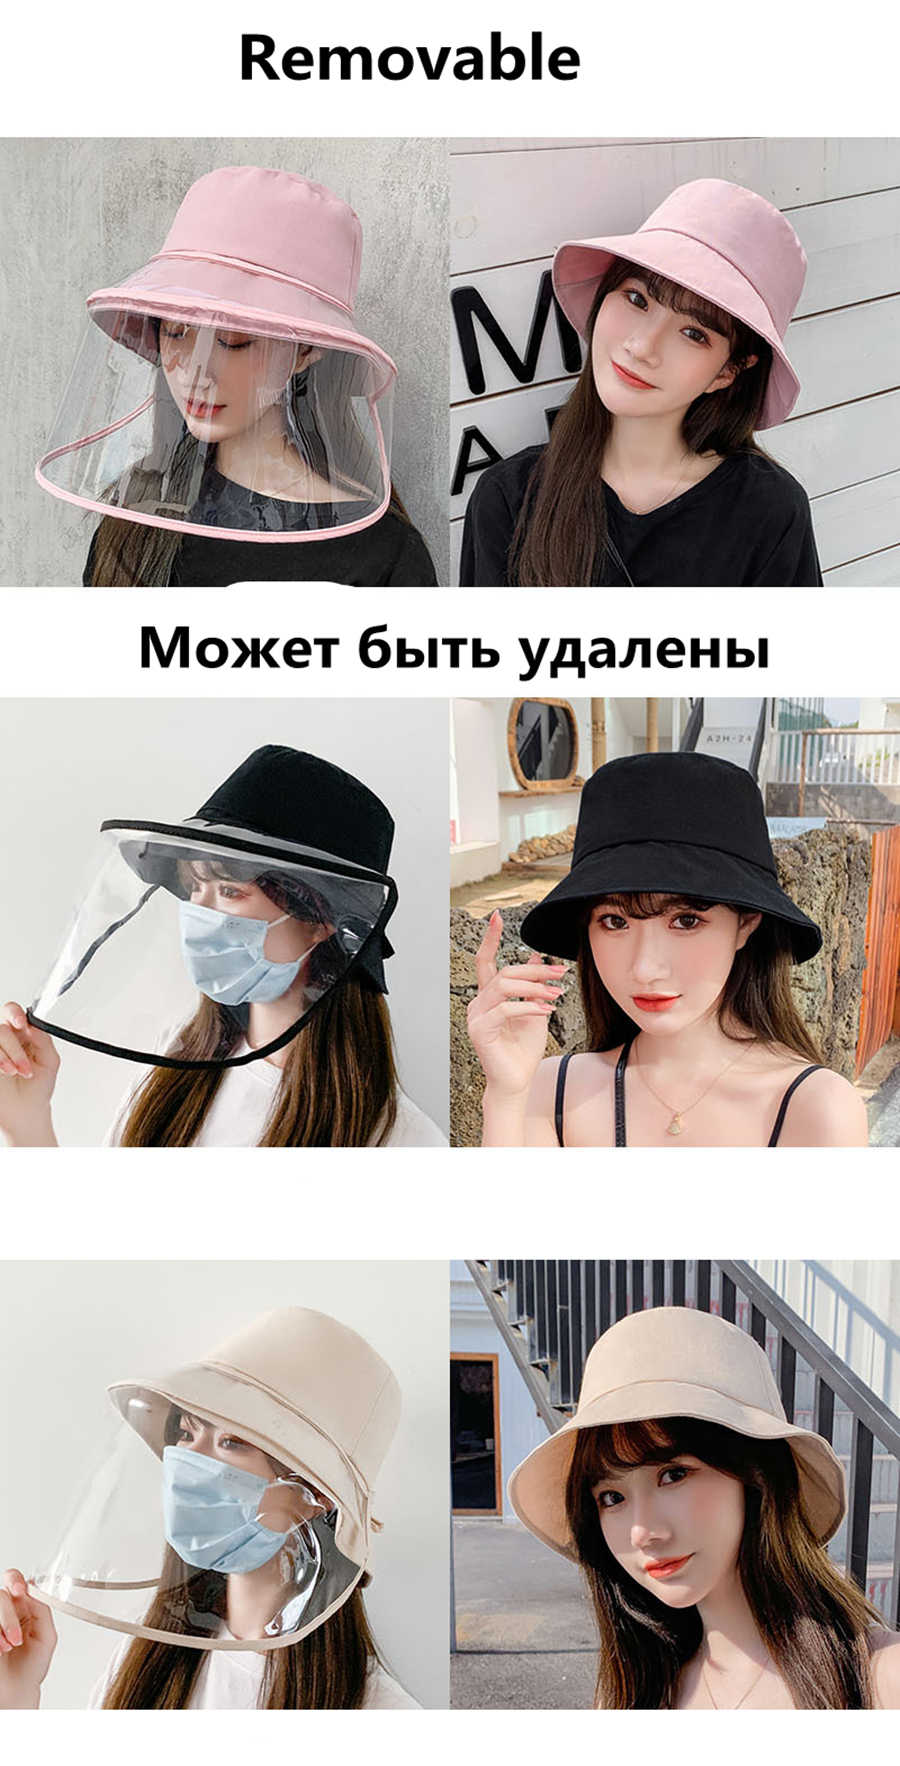 Hc57ea4d0d0184d6ea4e59492f0d66494n - Anti-fog Panama Hat Unisex Summer Anti-saliva Bucket Hats Big Brim Transparent TPU protection Removable Fisherman hat Sun Cap